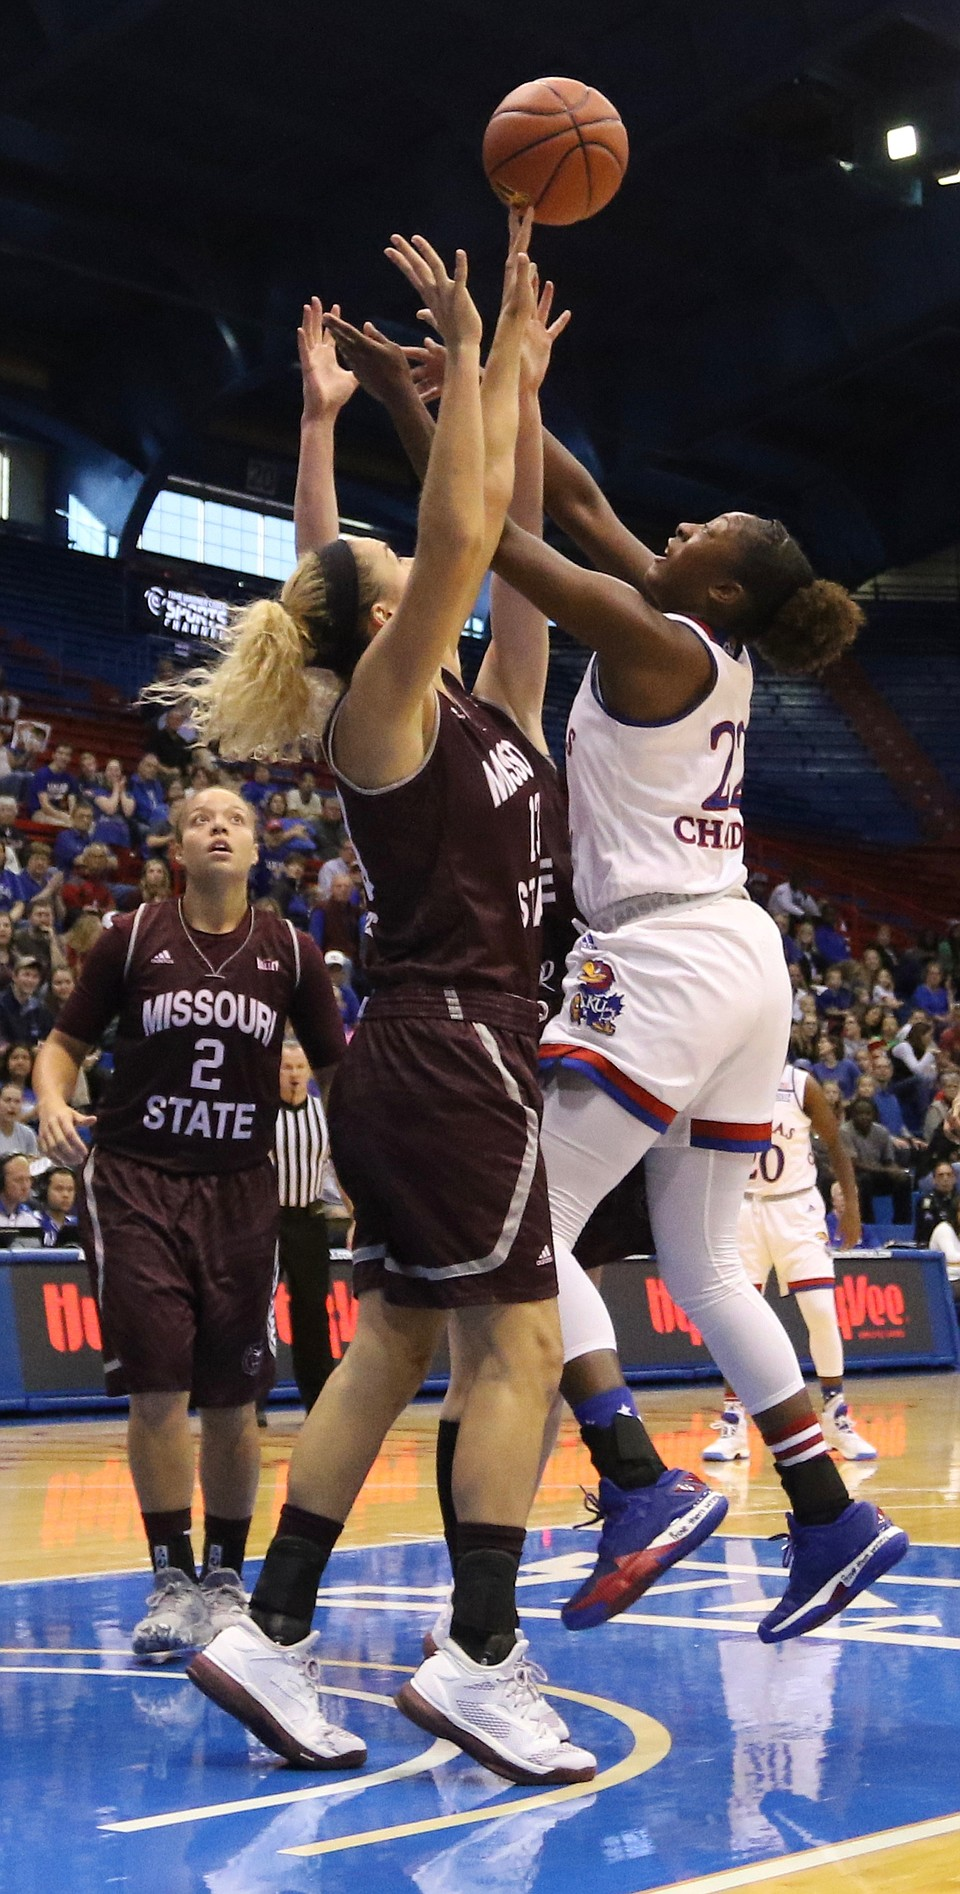 KU women's basketball vs. Missouri State | KUsports.com